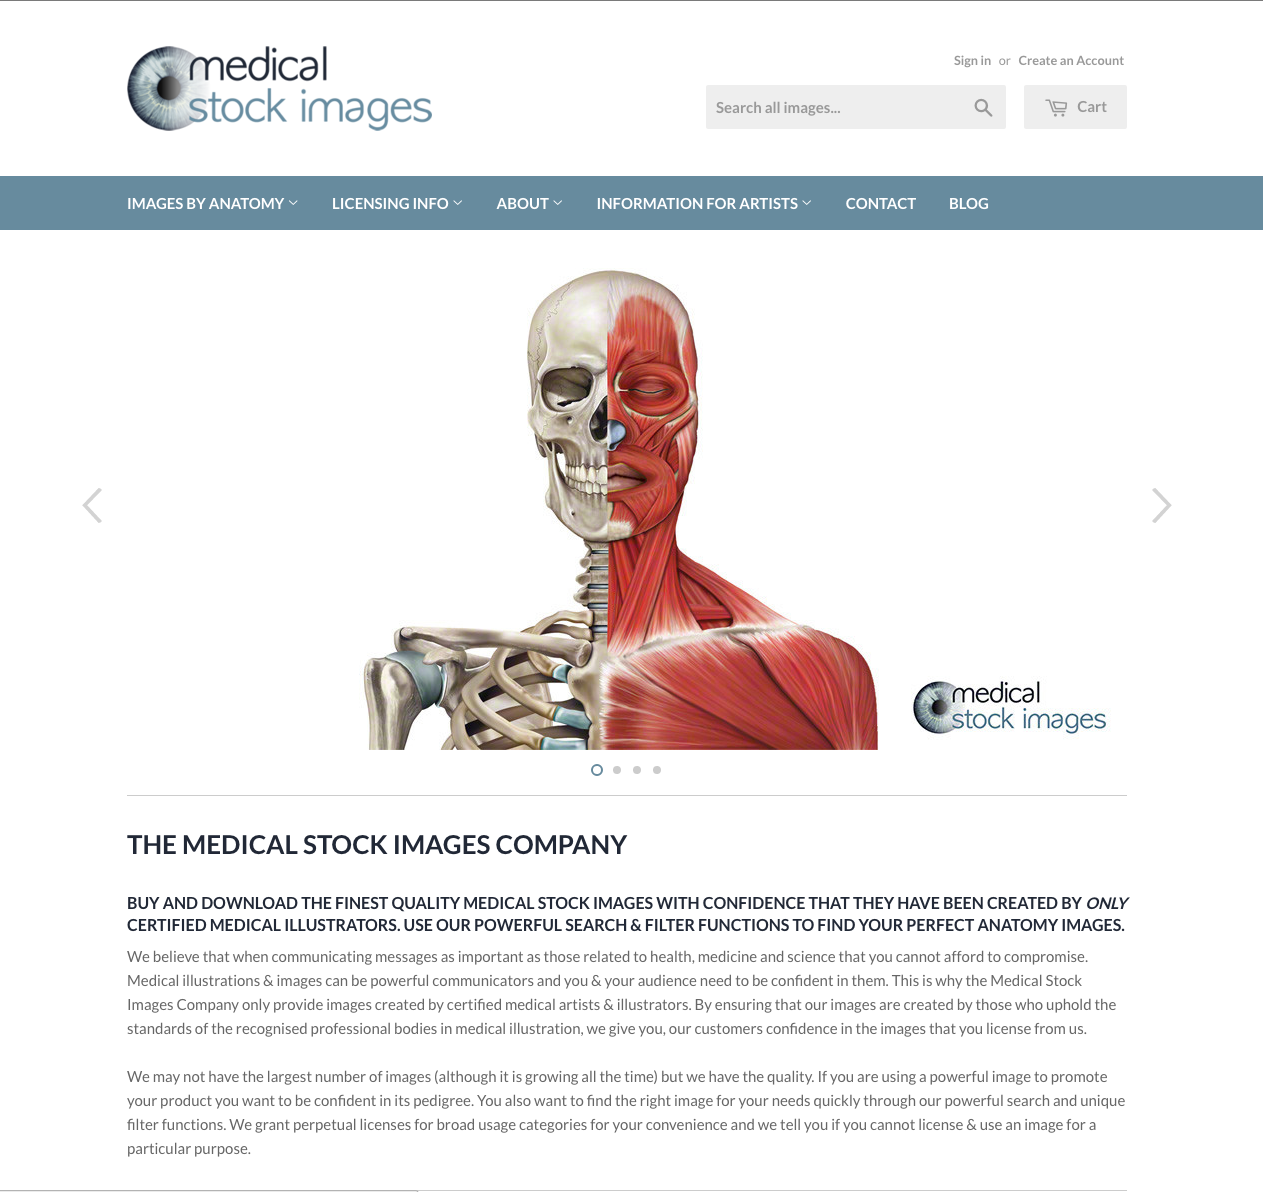 Medical Stock Images Company Website